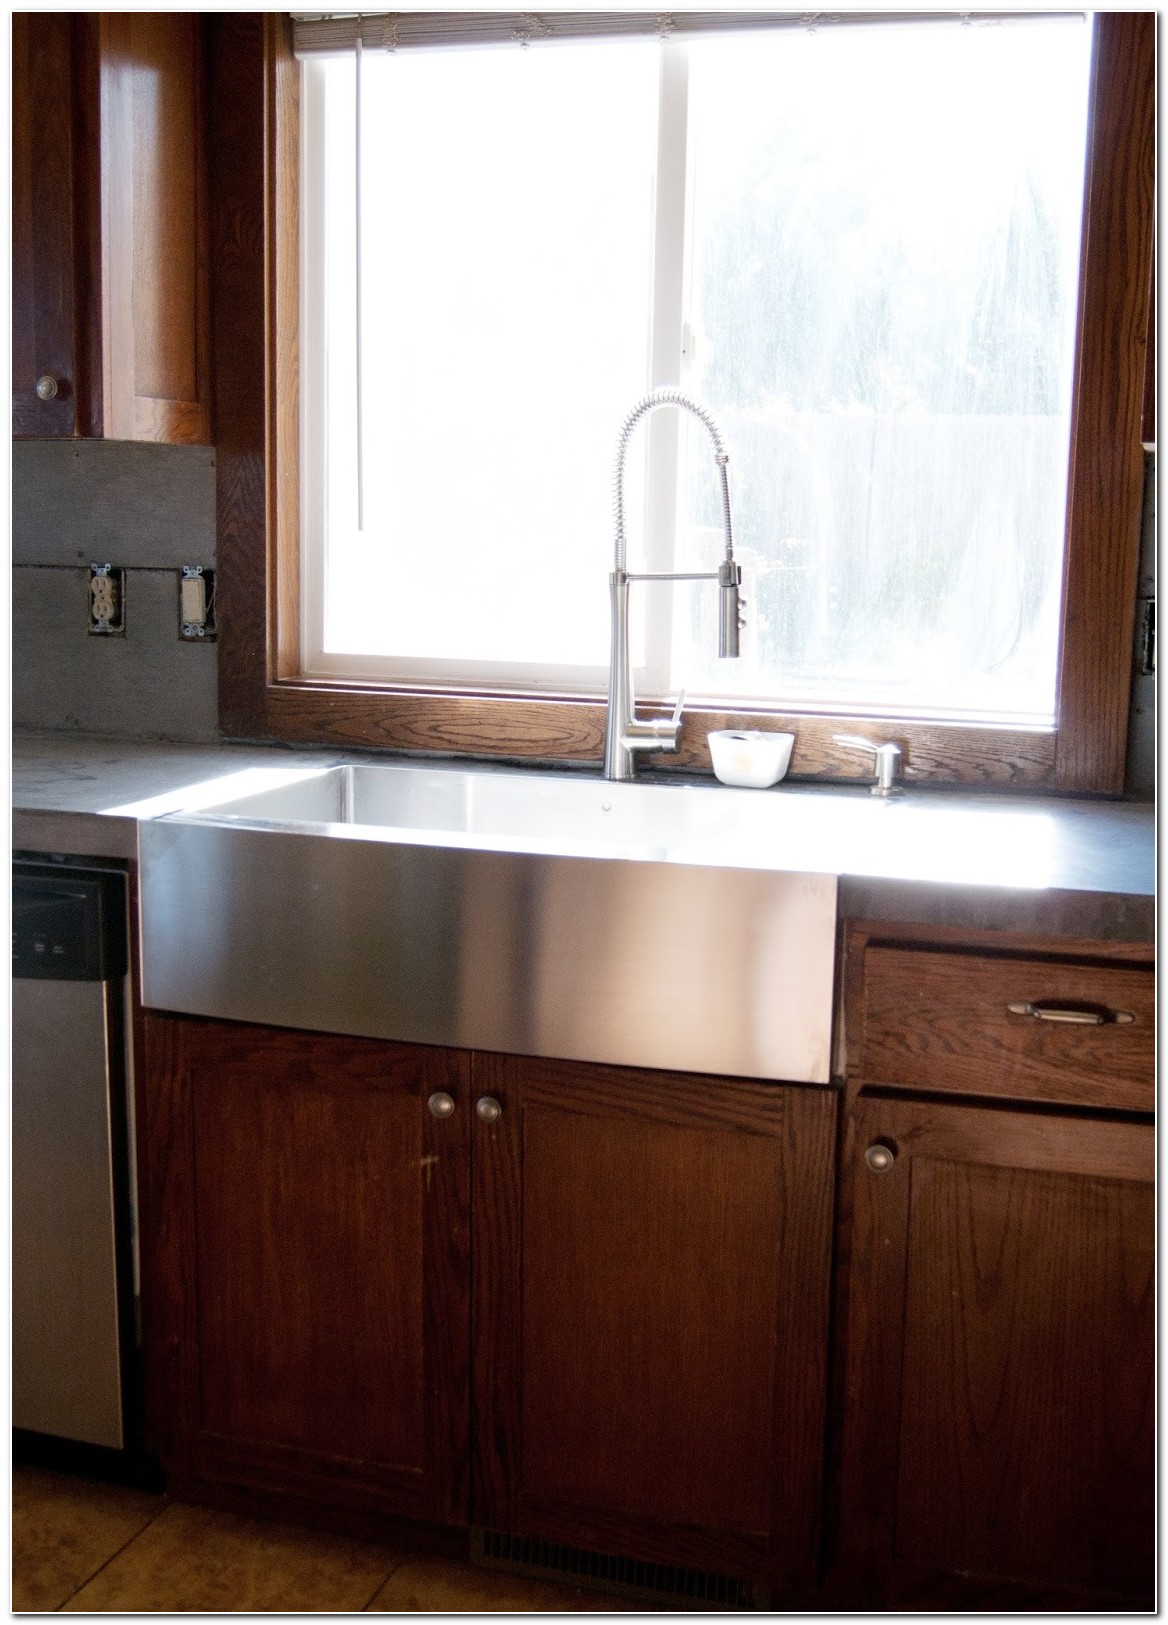 Flush Mount Stainless Steel Apron Sink